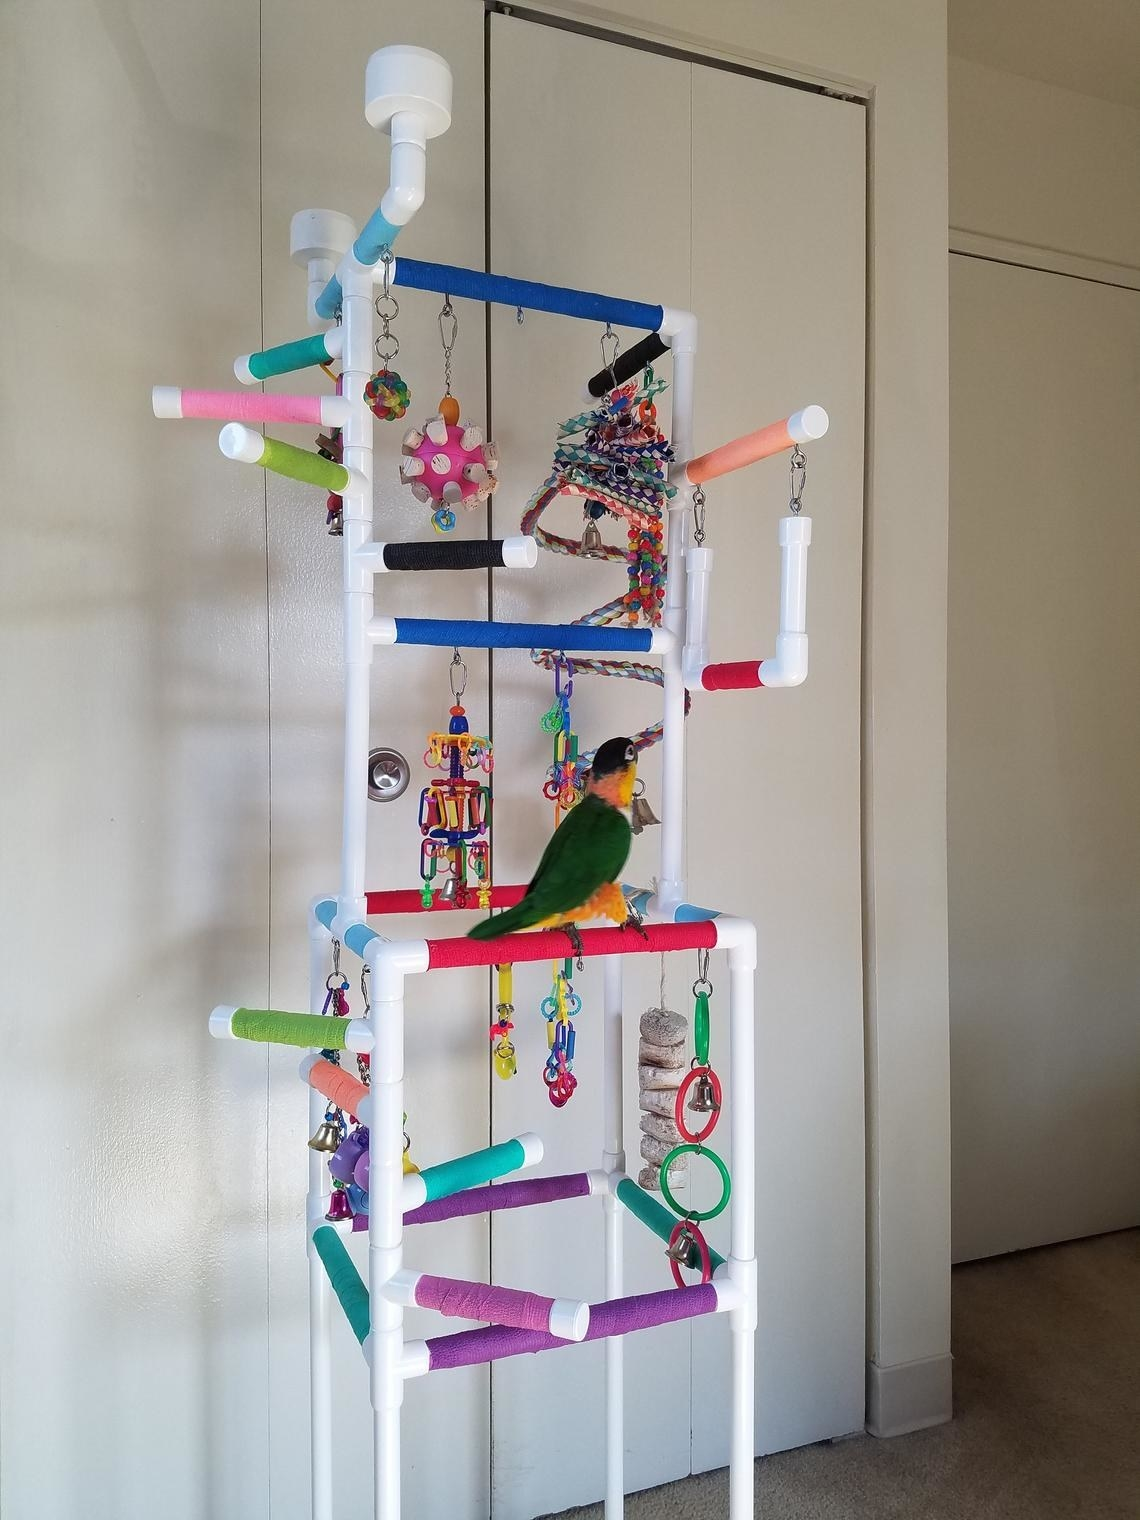 The multi-tiered PVC pipe play gym which has lots of toys attached to it